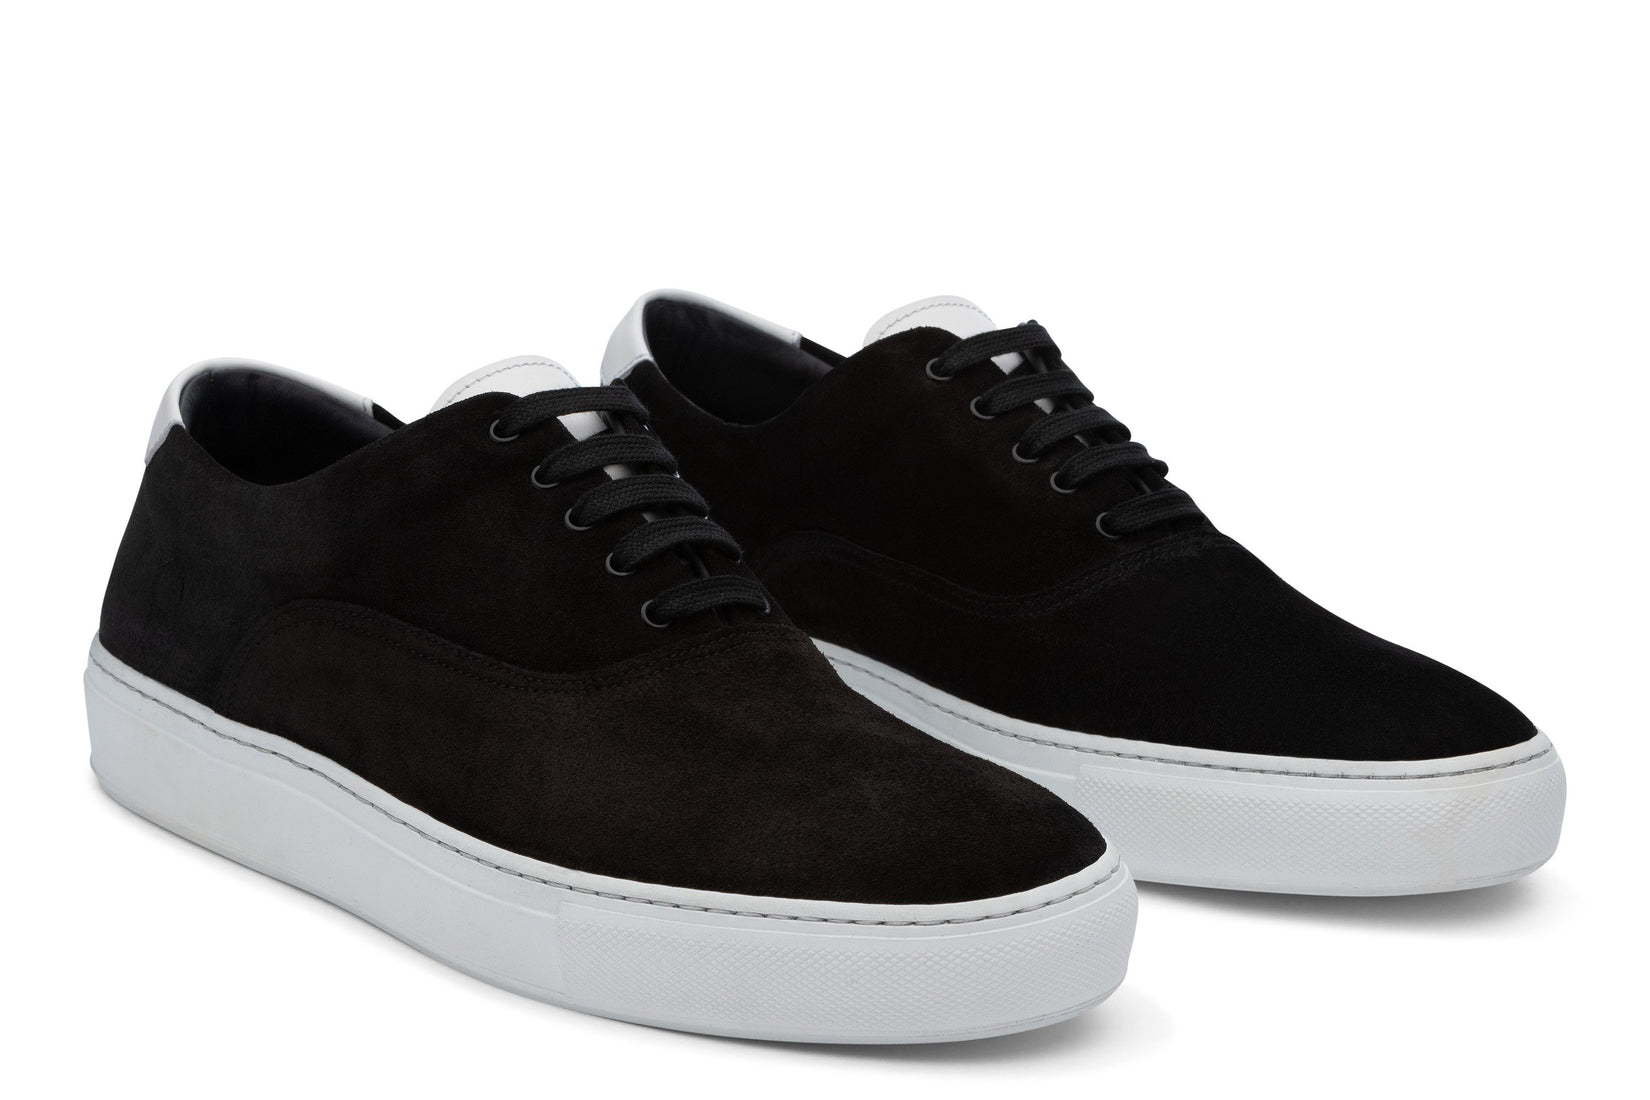 Sunday Skater Sneaker in Black